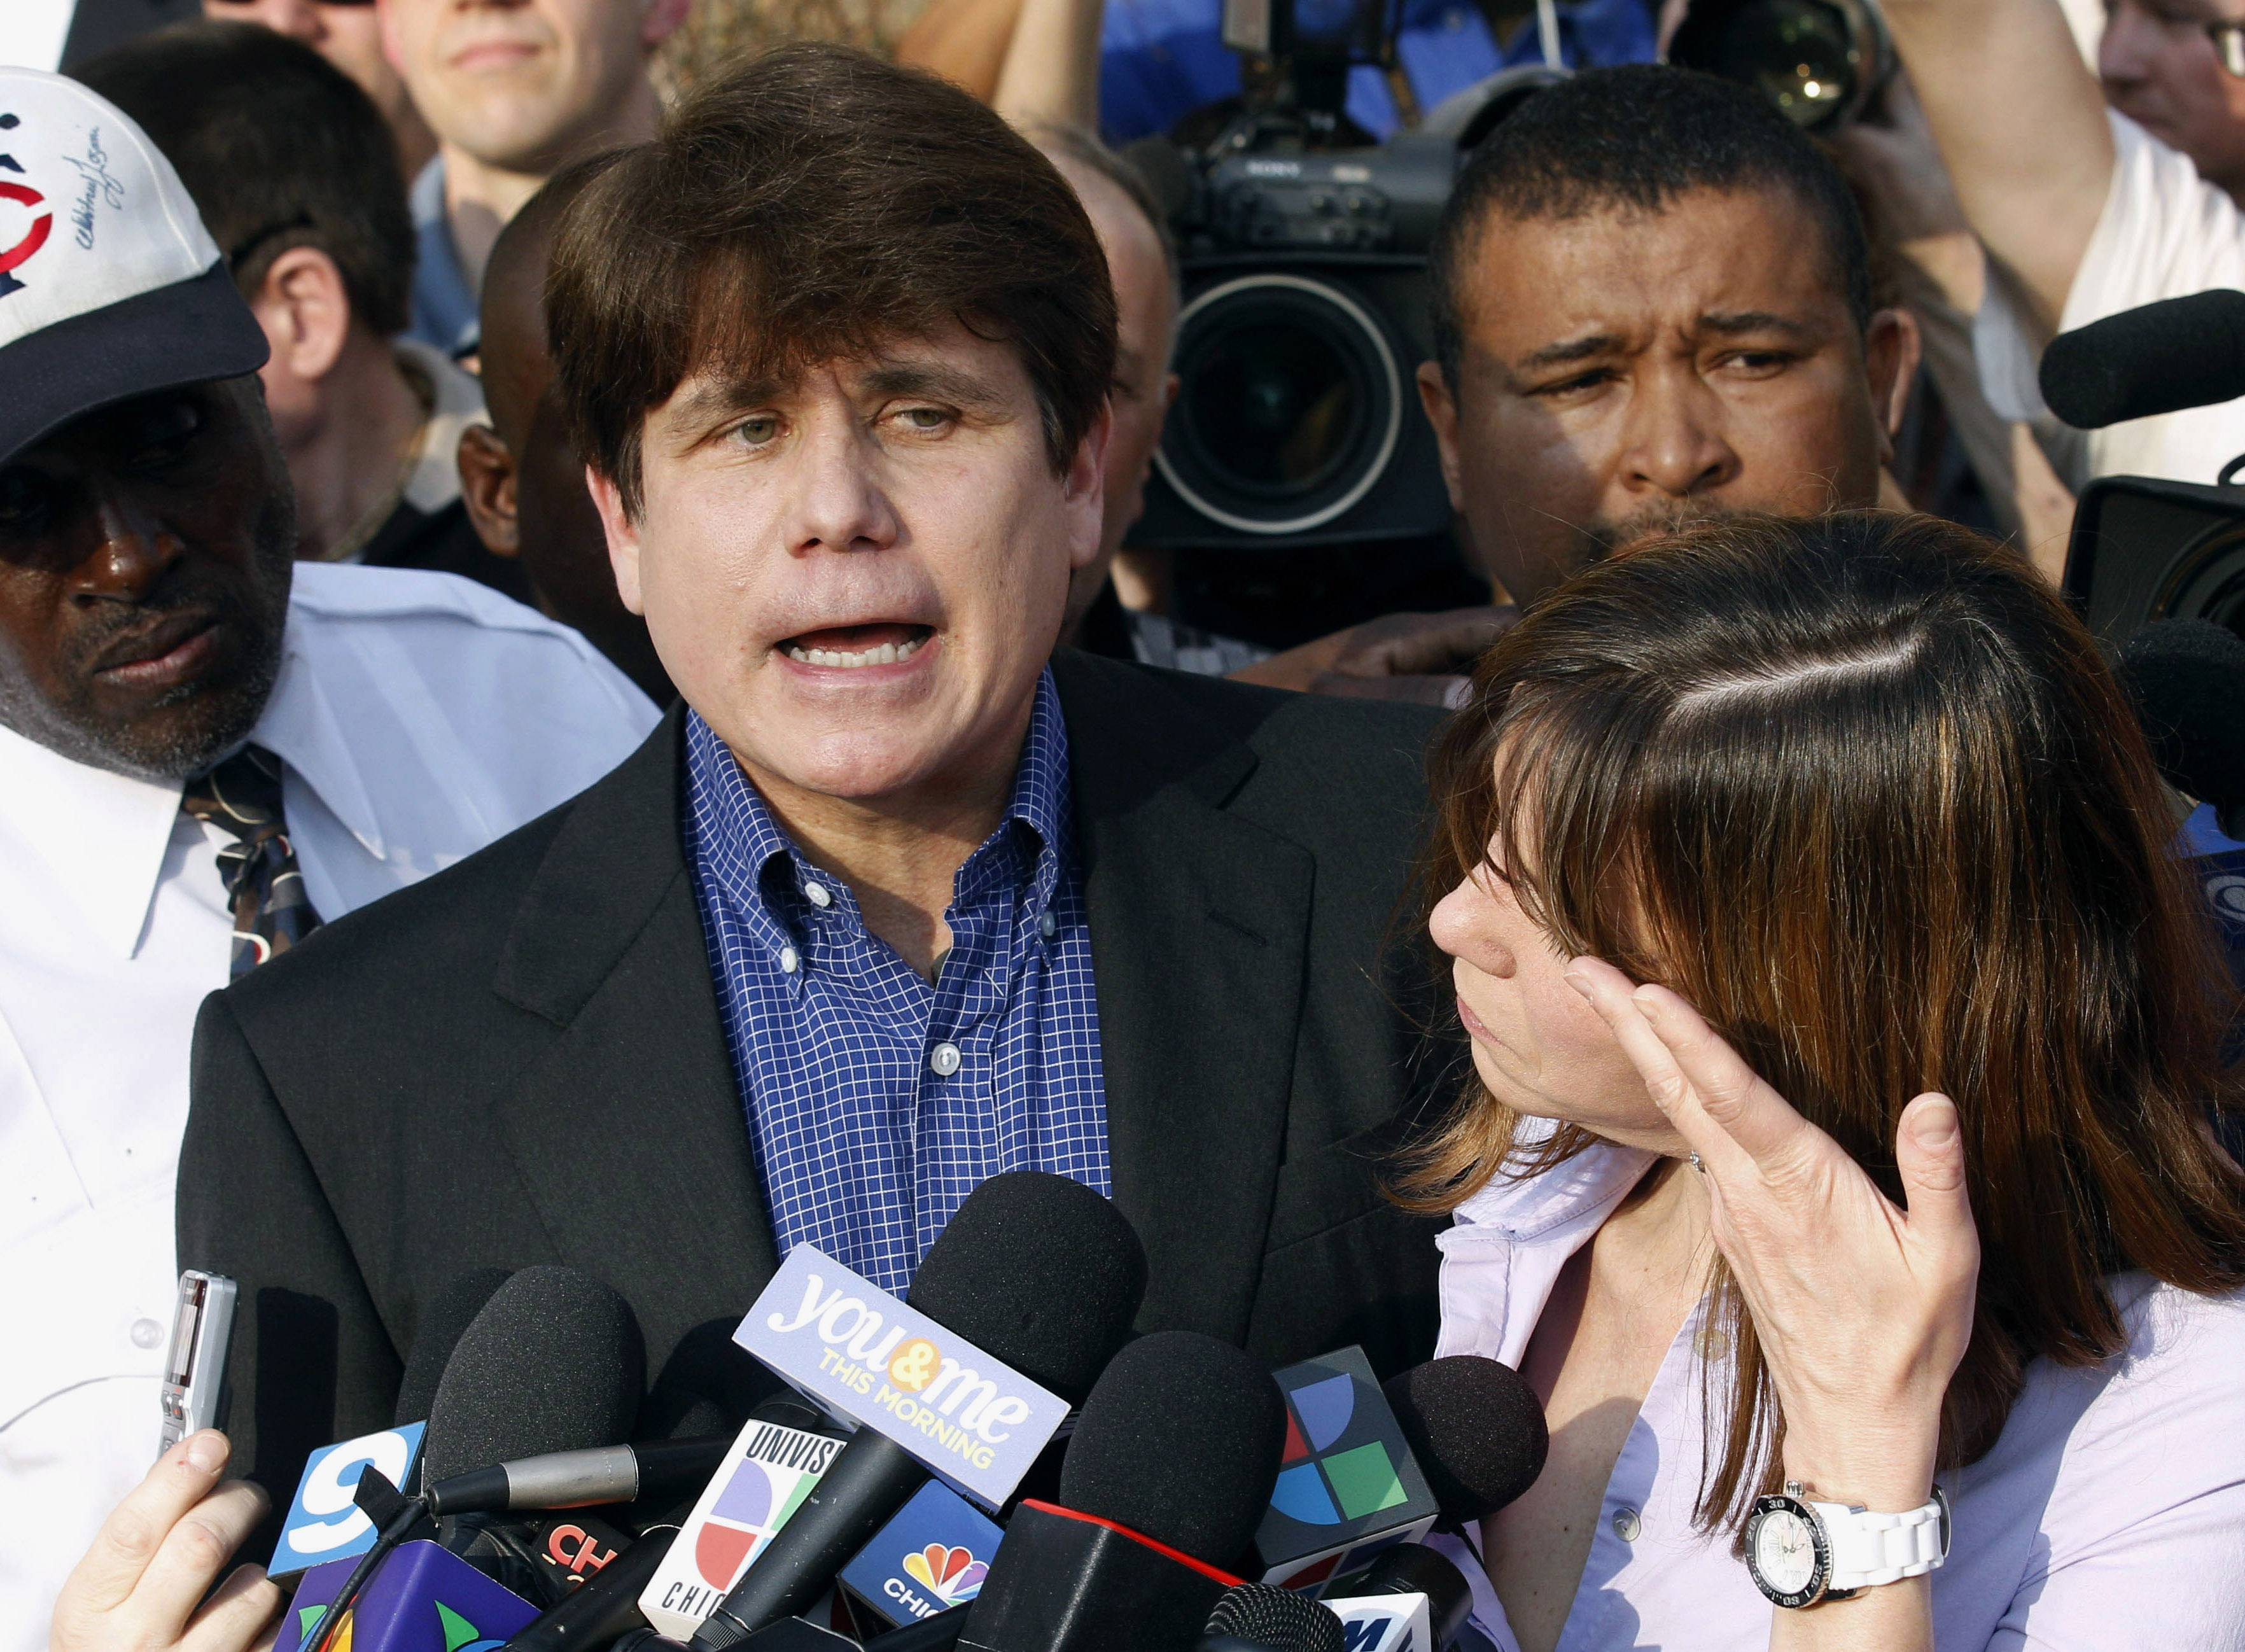 An appeals court Tuesday, April 18, 2017, heard oral arguments on whether former Illinois Gov. Rod Blagojevich should get a third sentencing hearing. The hearing came more than five years after a lower court imposed a 14-year sentence on 18 corruption convictions.